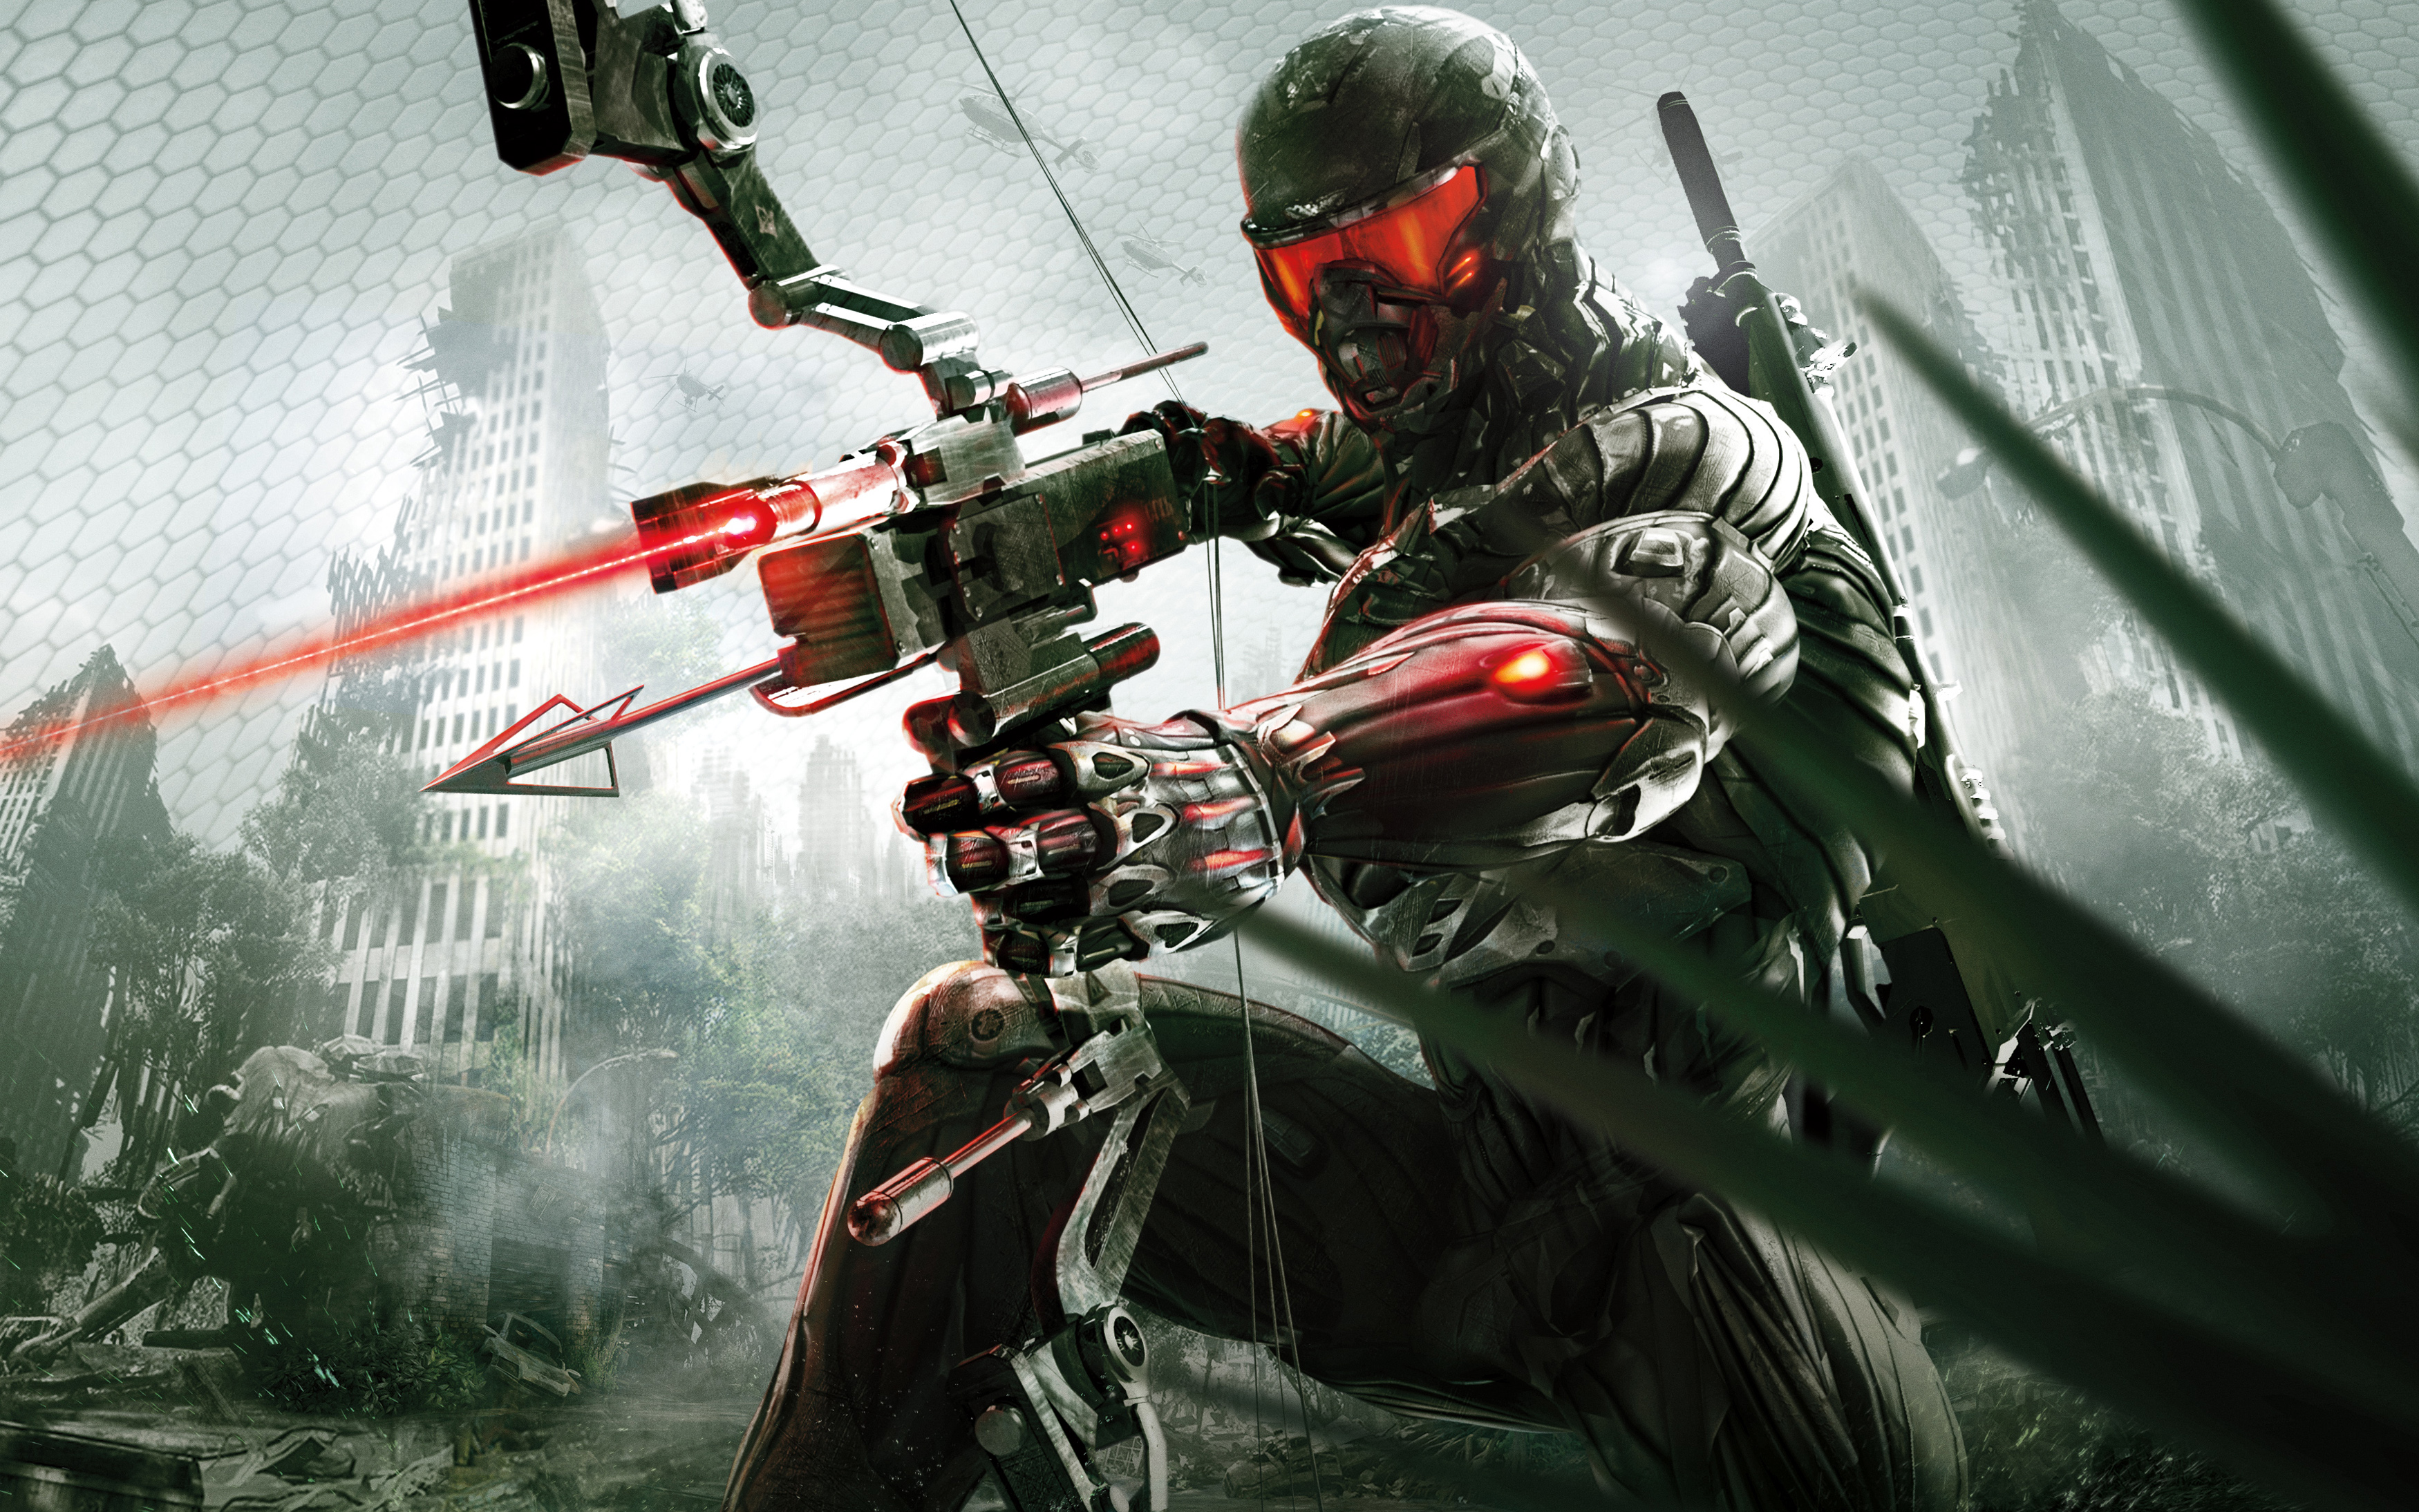 2013 Crysis 3 Wallpapers HD Wallpapers 3500x2188